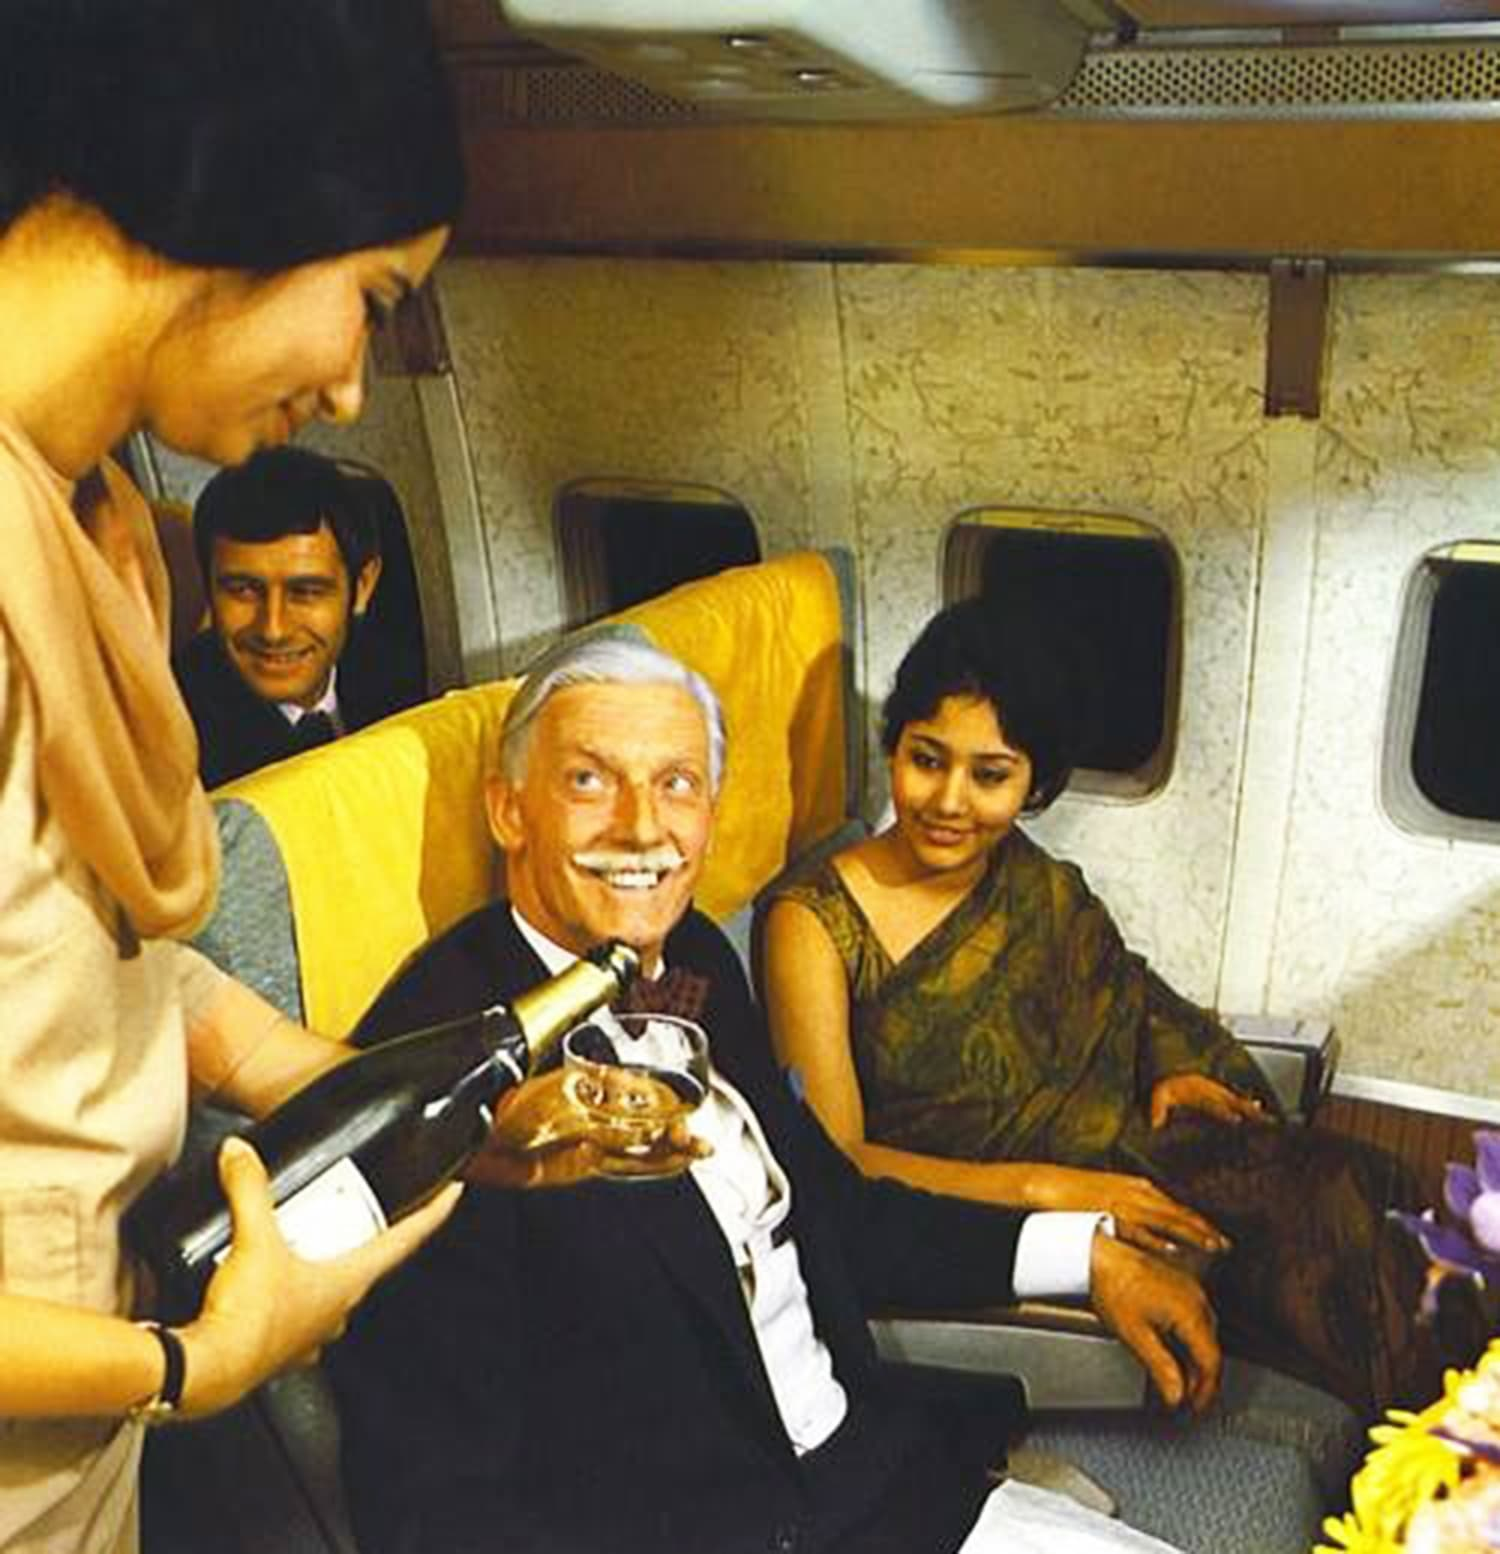 1967: An air-hostess of Pakistan International Airlines pours Champagne for a business-class passenger at Karachi Airport.